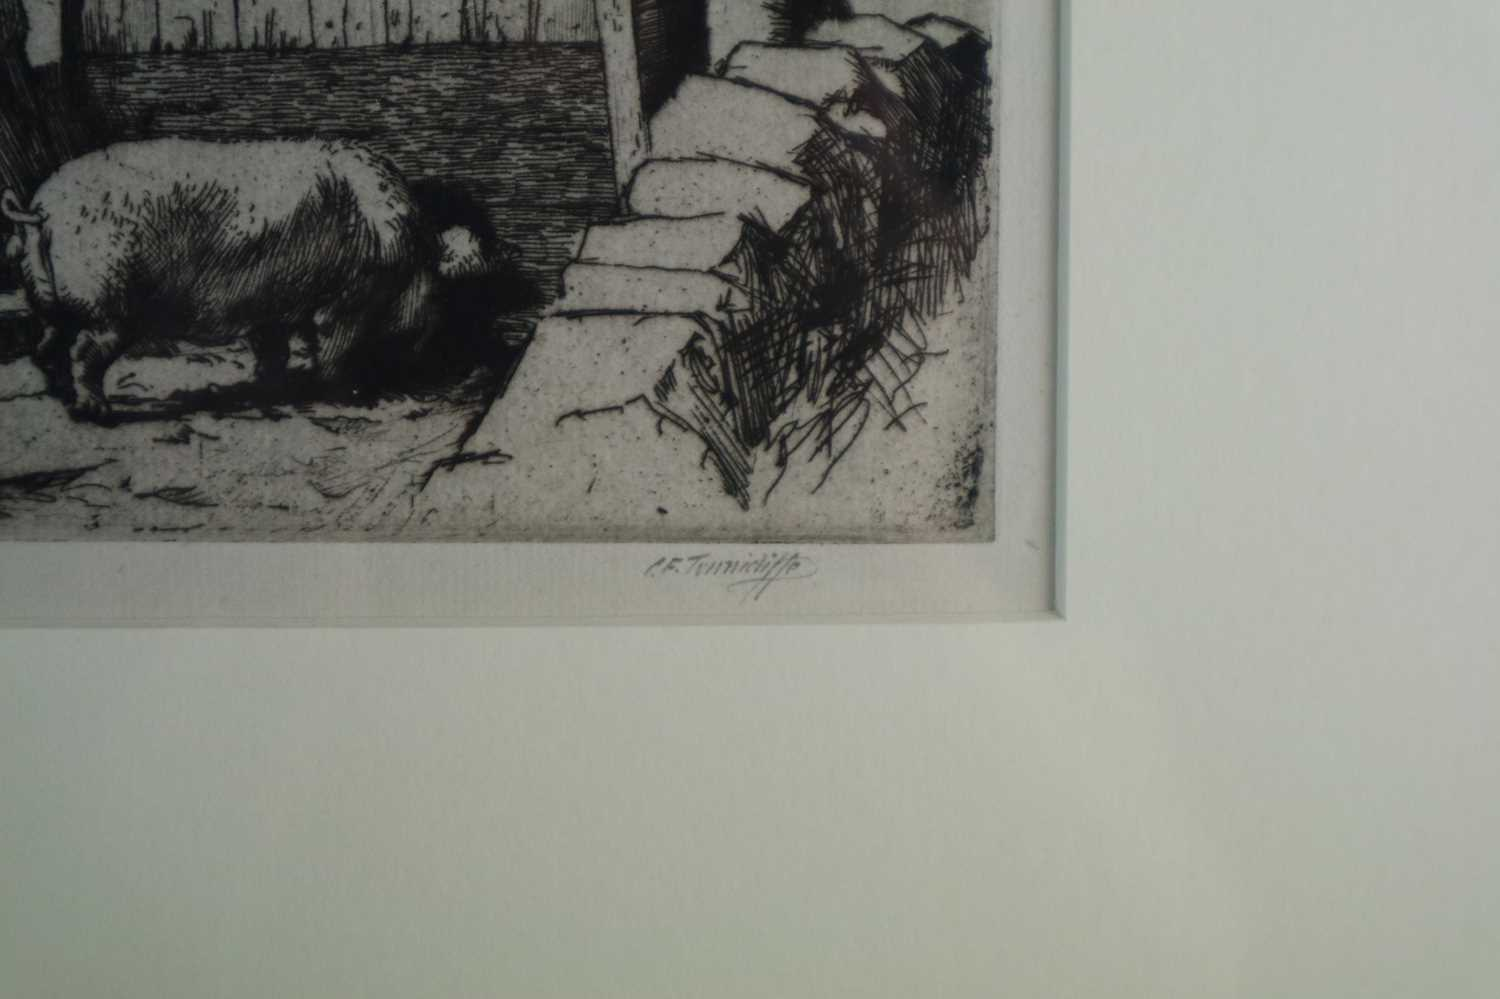 Charles Frederick Tunnicliffe OBE RA (1901-1979) The Pig Dealer - Image 3 of 4